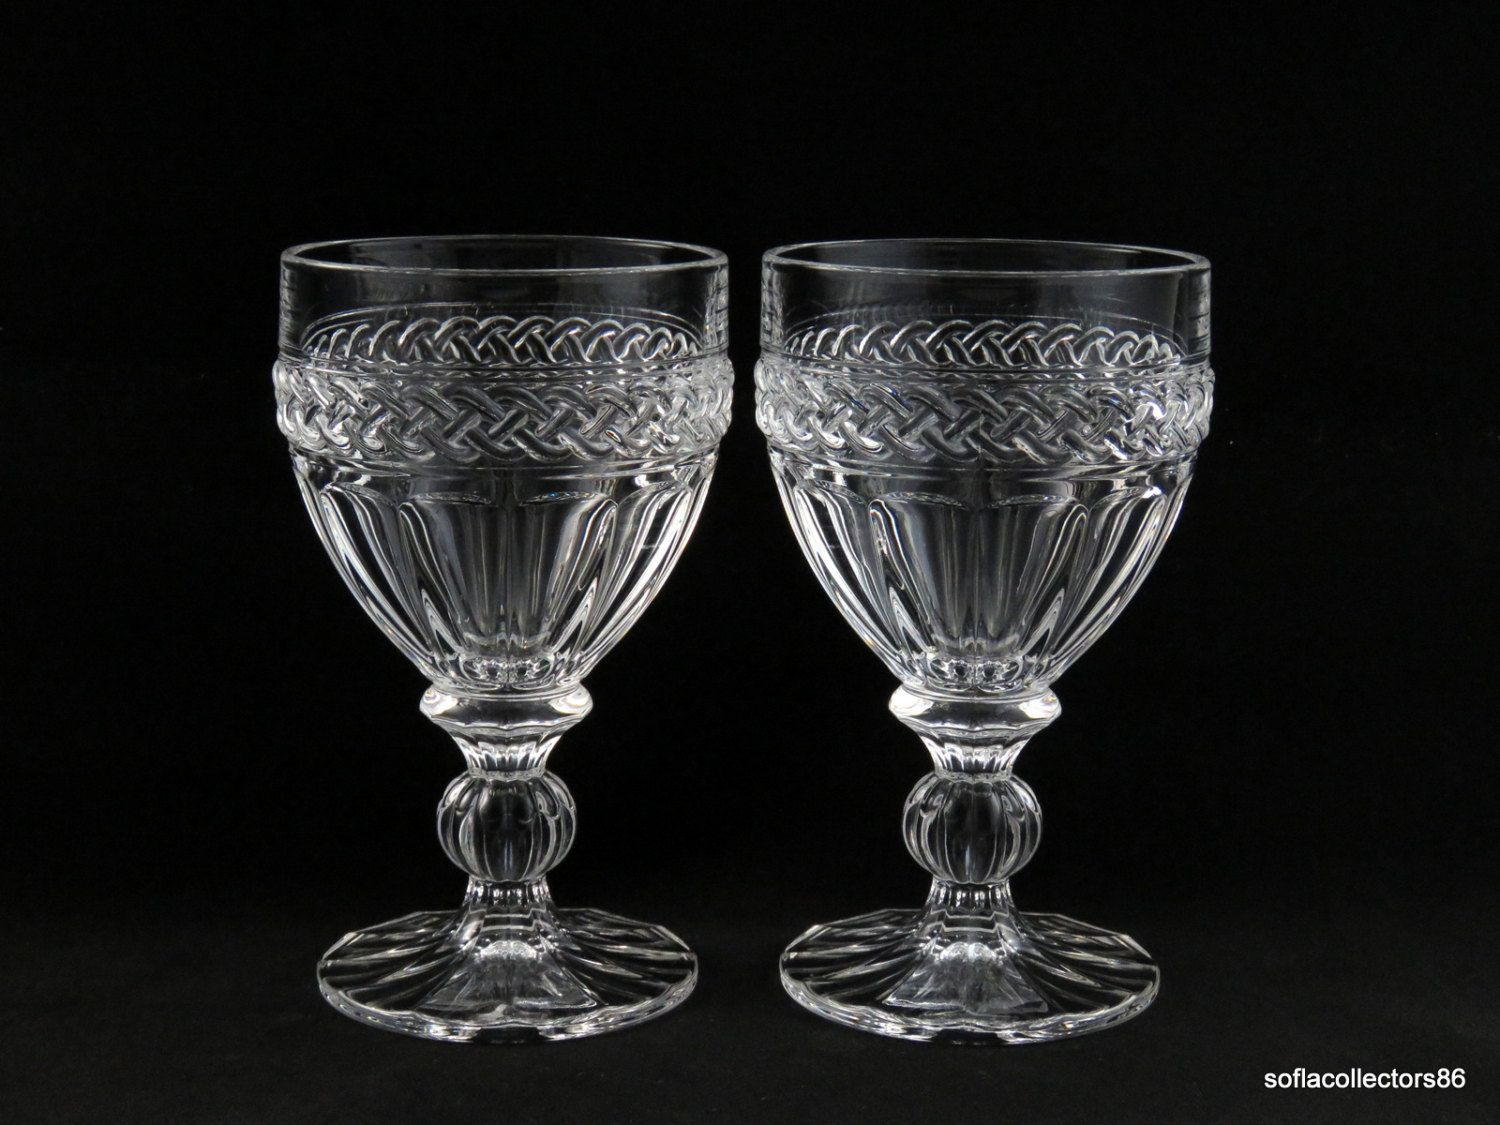 towle crystal water goblets water glasses with braided pattern and panels vintage 1960s stemware - Water Goblets